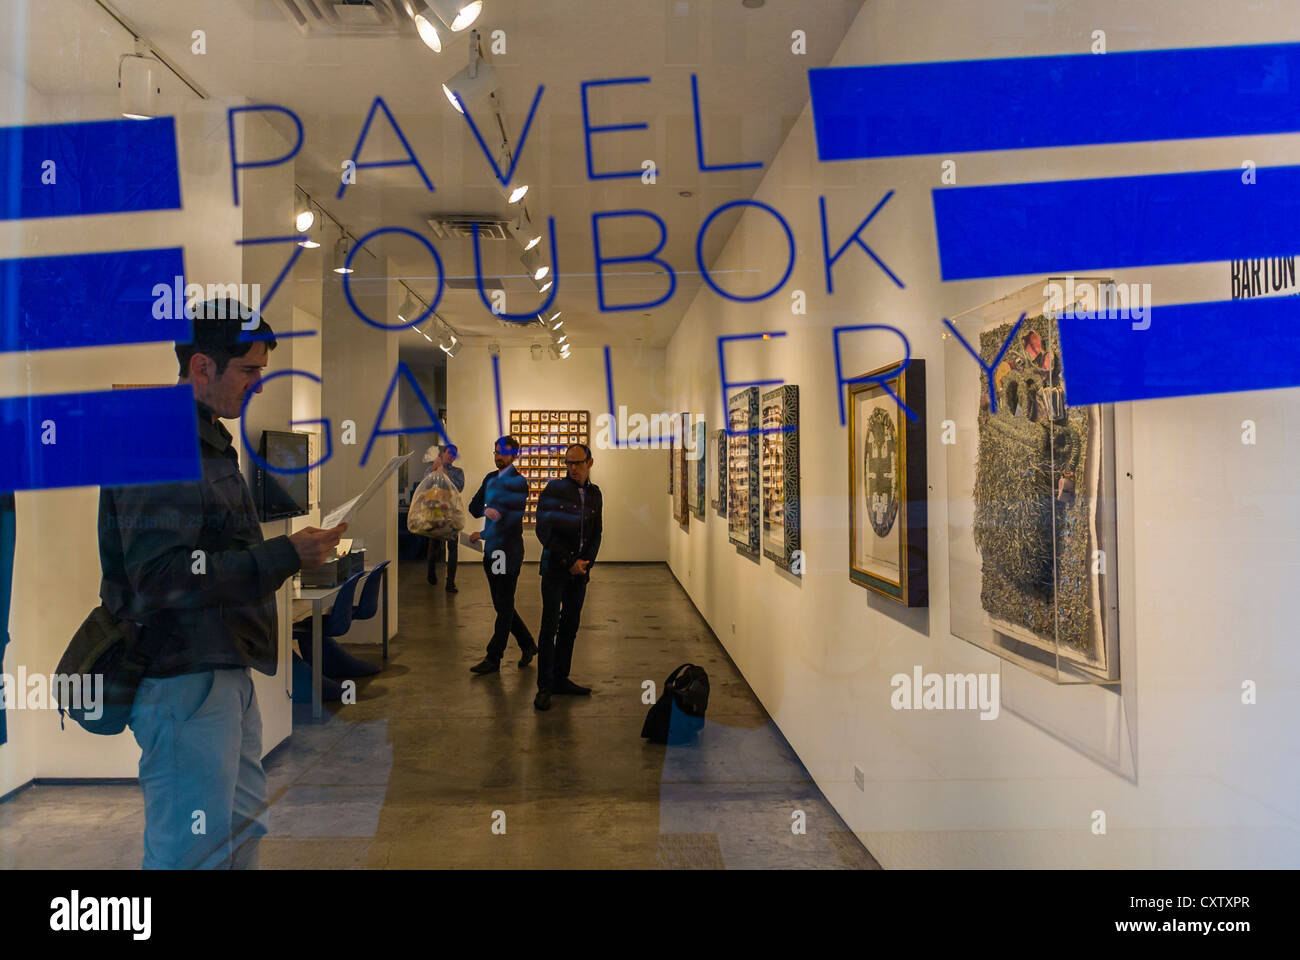 "New York City, NY, USA, People Visiting Art Galleries, ""Pavel Zoubok Gallery"", Window Sign, ""Thrill of the Hunt"", Stock Photo"